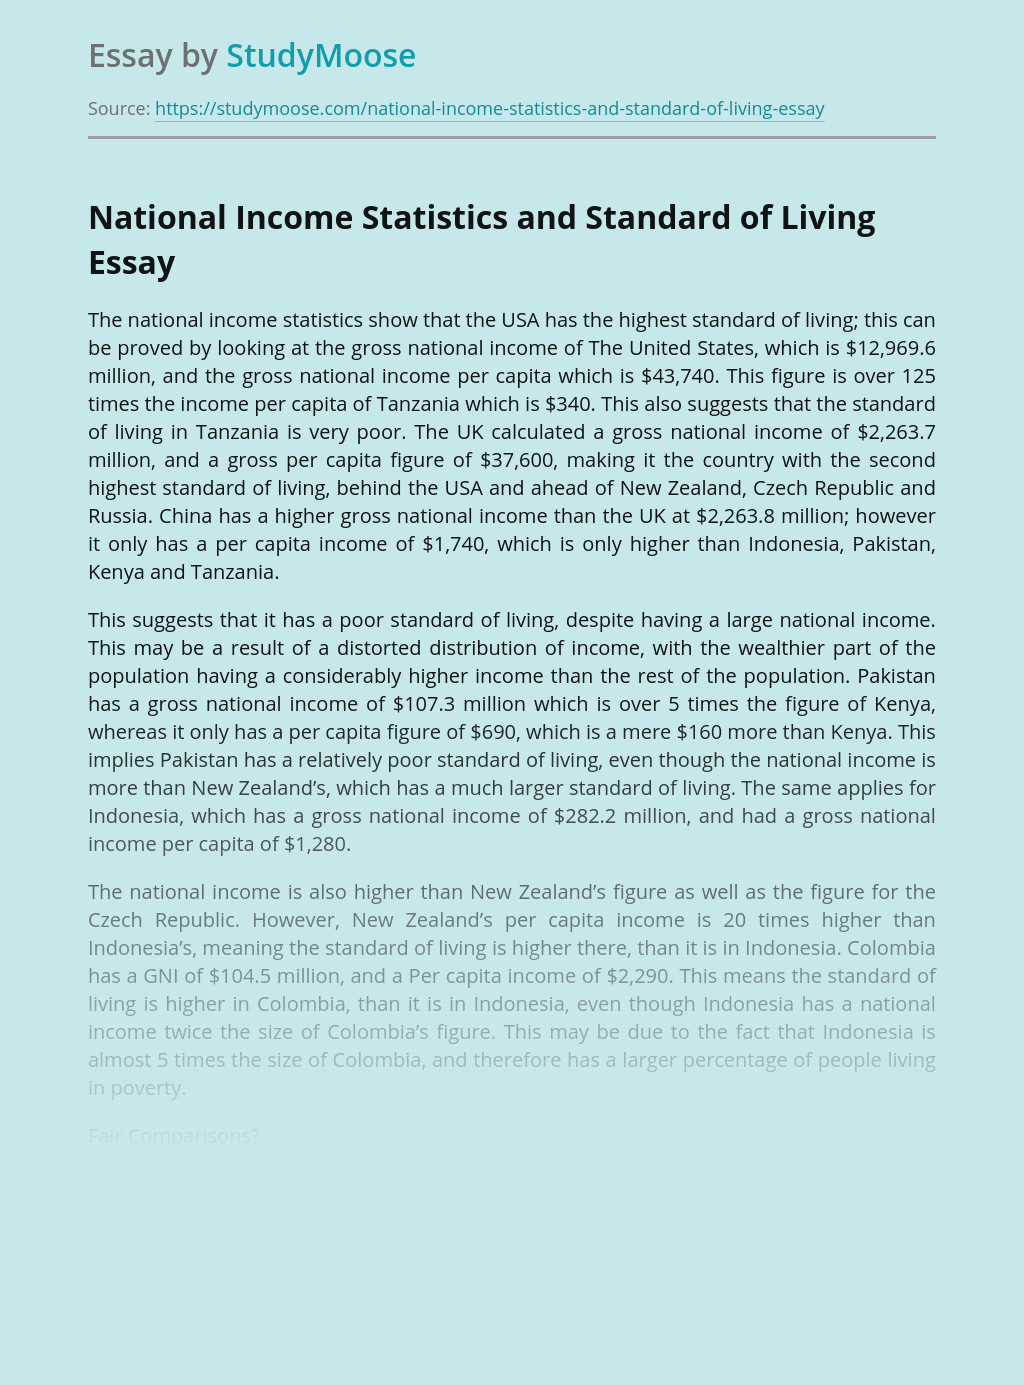 National Income Statistics and Standard of Living